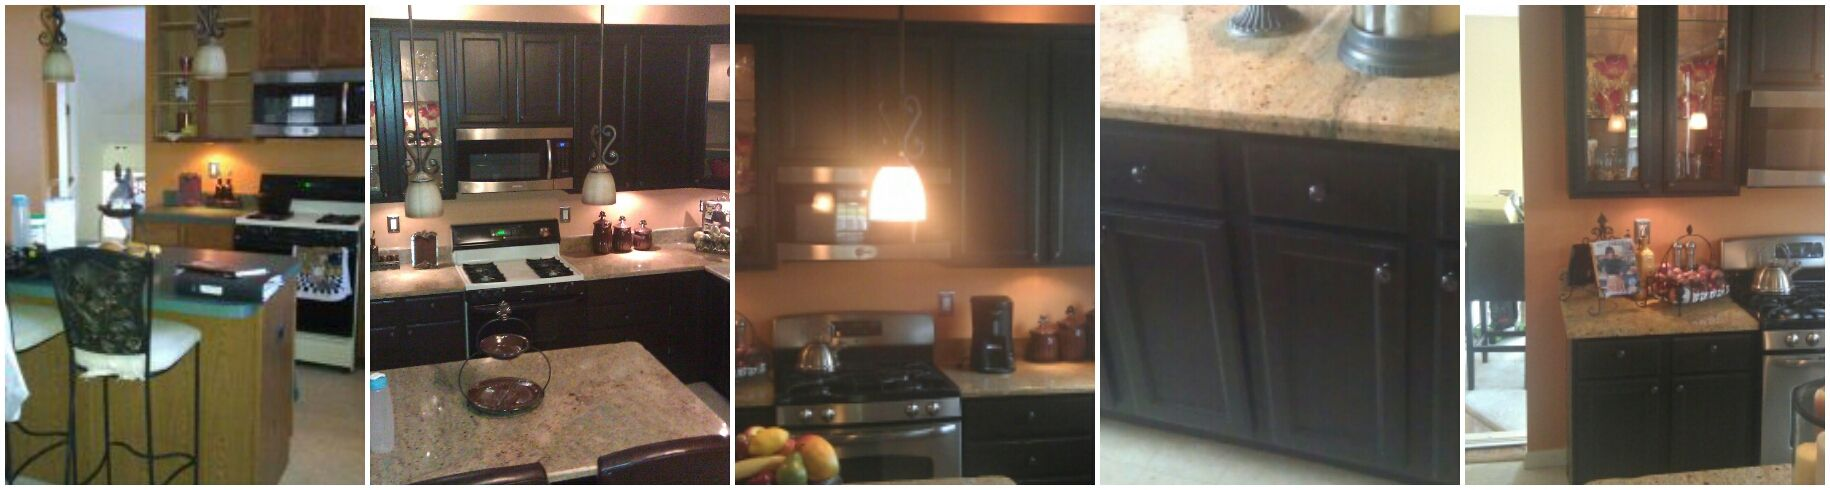 Kitchen Cabinet Redo  DIY  Pinterest